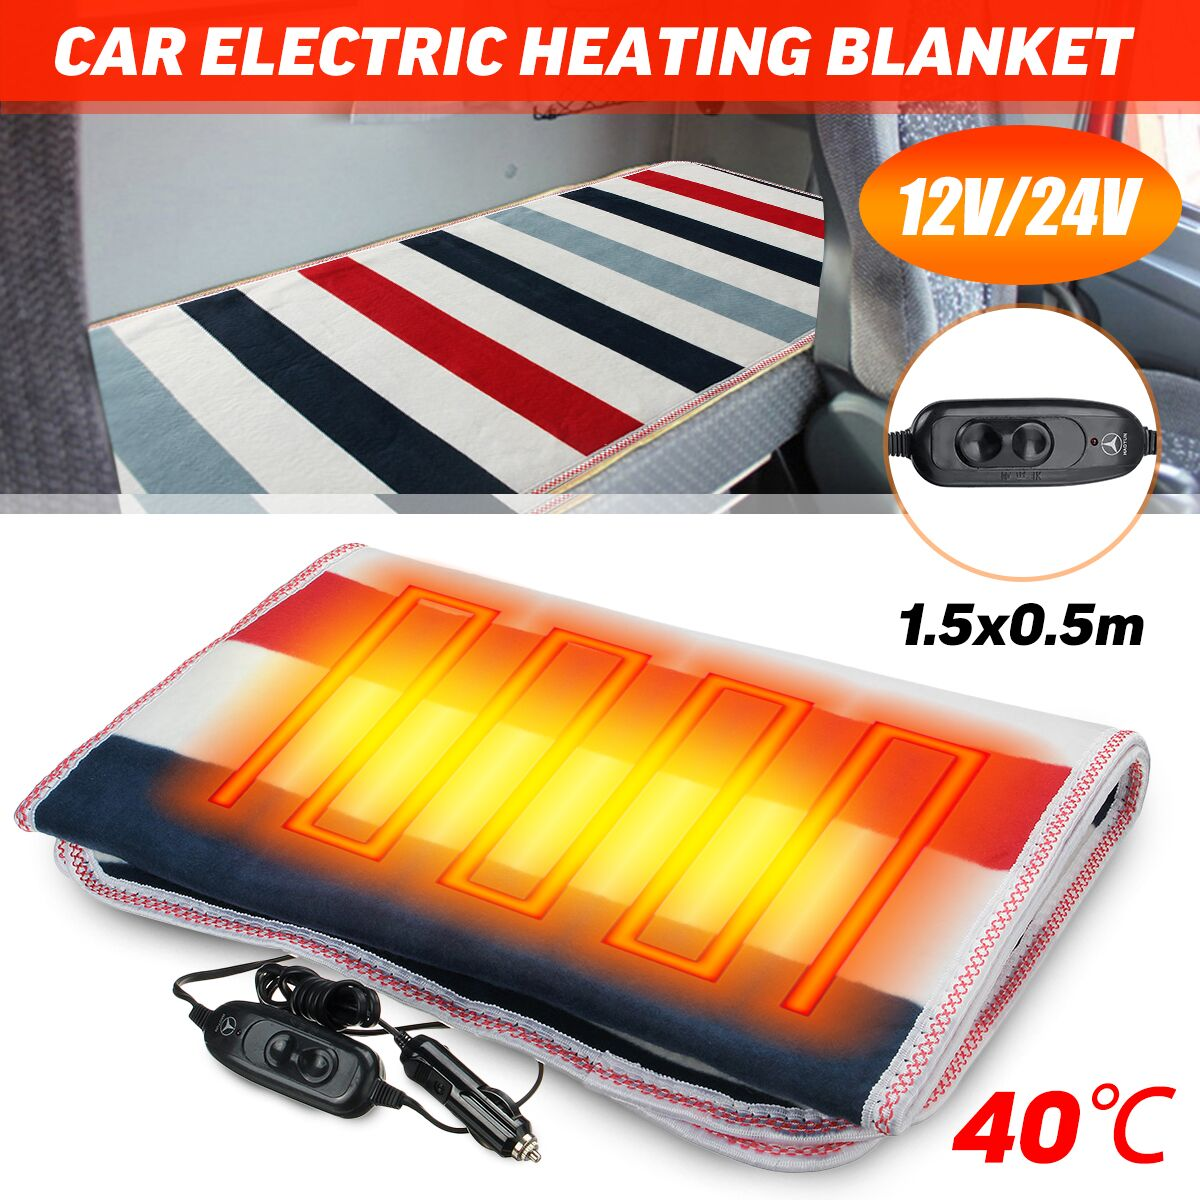 Universal Car Electric Warming Heating Blanket Pads 12V/24V Auto Winter Warm Cushion Home Office Electric Heated Blankets Plush